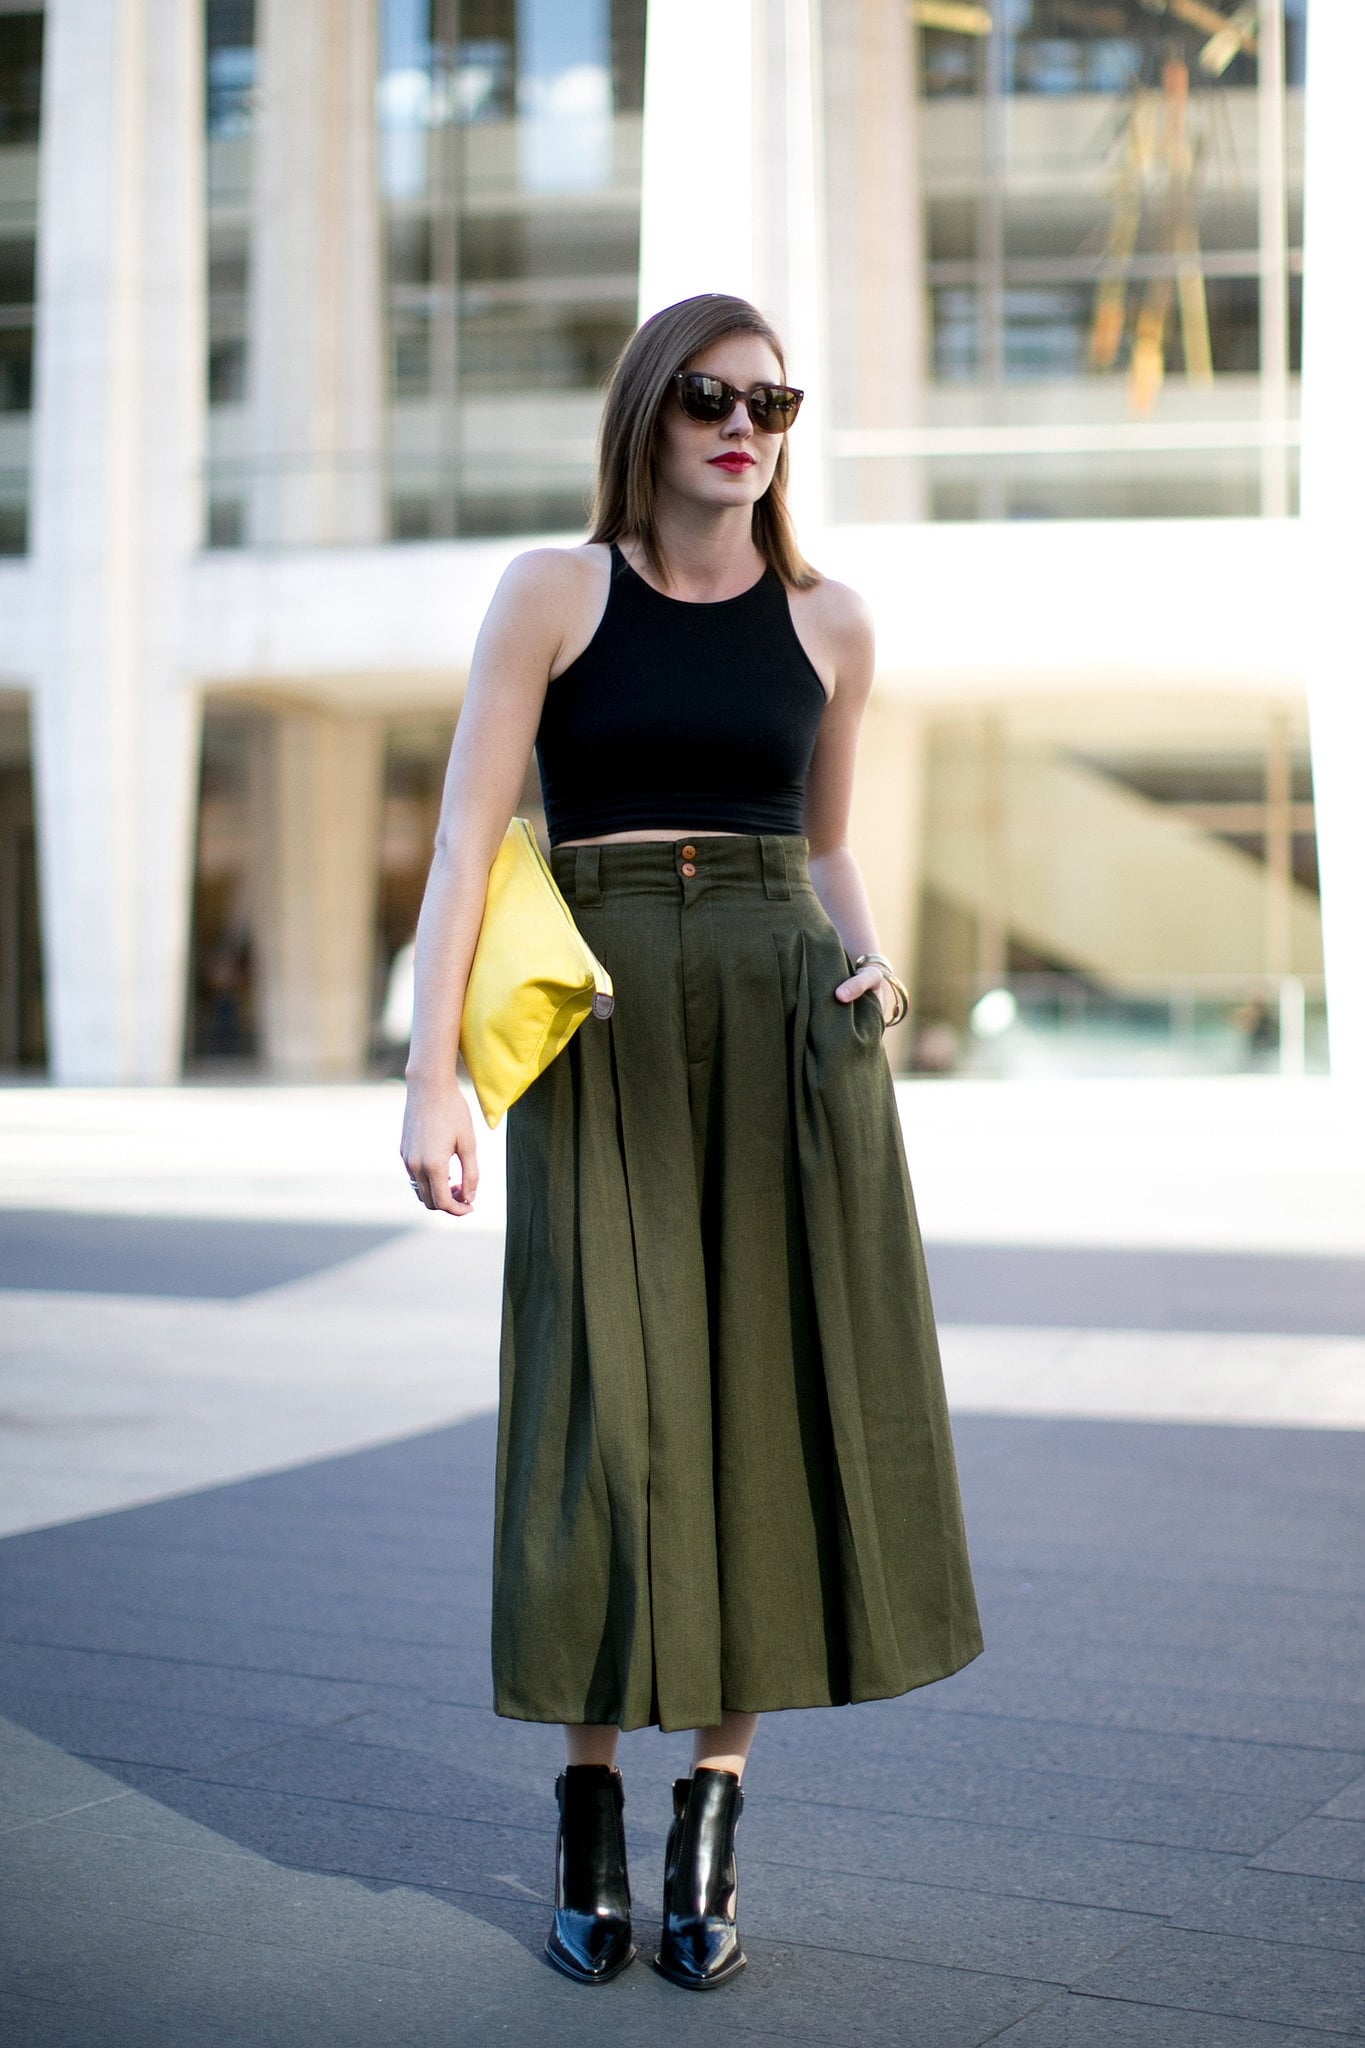 Make your neutral maxi skirts and boots feel Summer ready when you add a crop top.